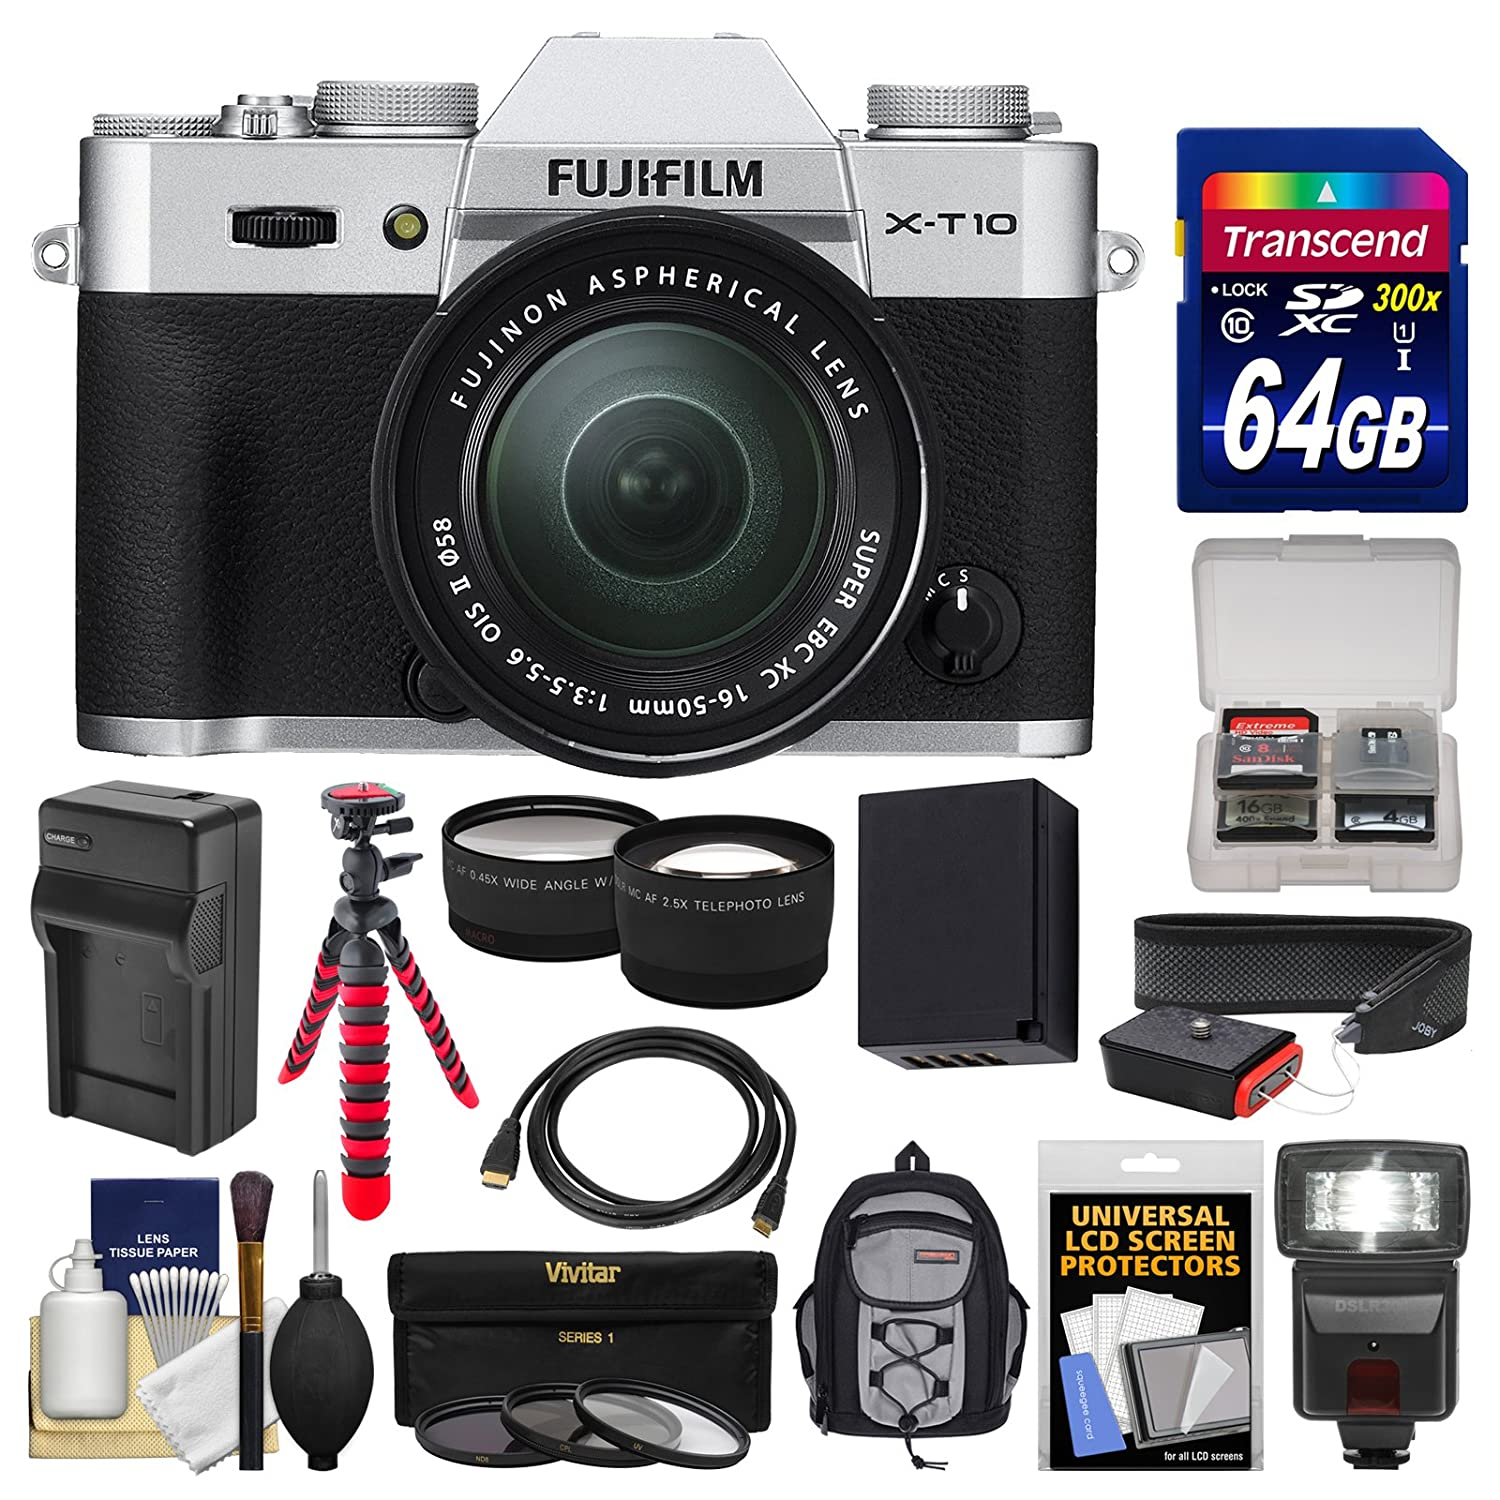 Fujifilm X-T10 Digital Camera & 16-50mm II XC Lens (Silver) with 64GB Card + Backpack + Flash + Battery & Charger + Tripod + Tele/Wide Lens Kit